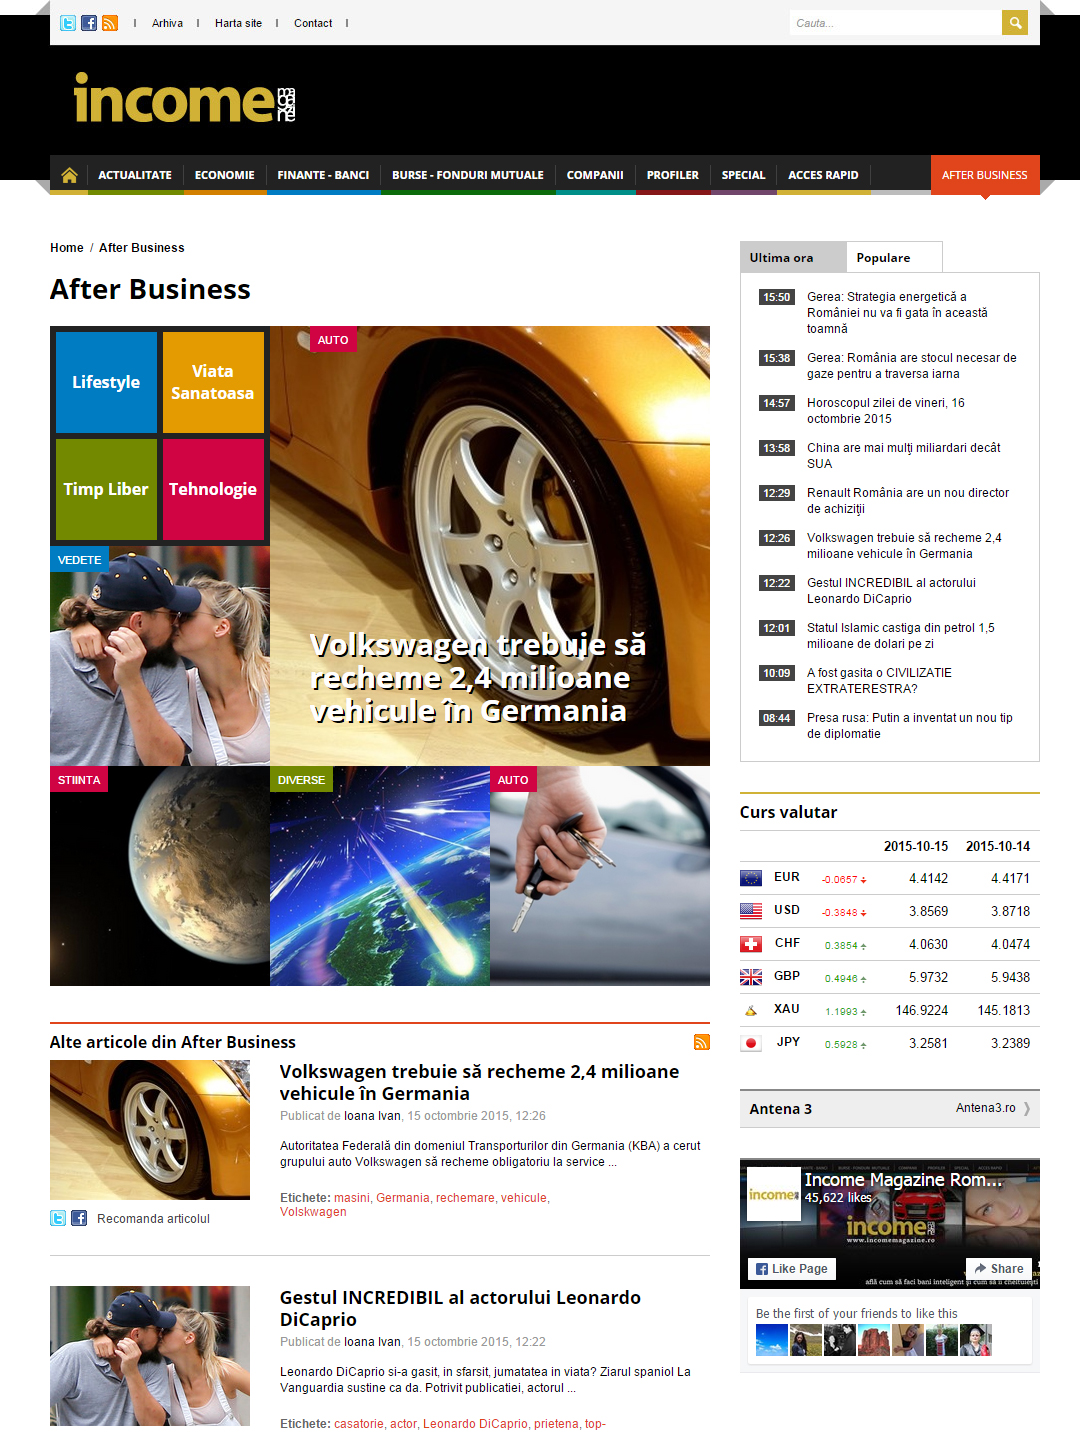 Intact Media Group - Income Magazine - After Business